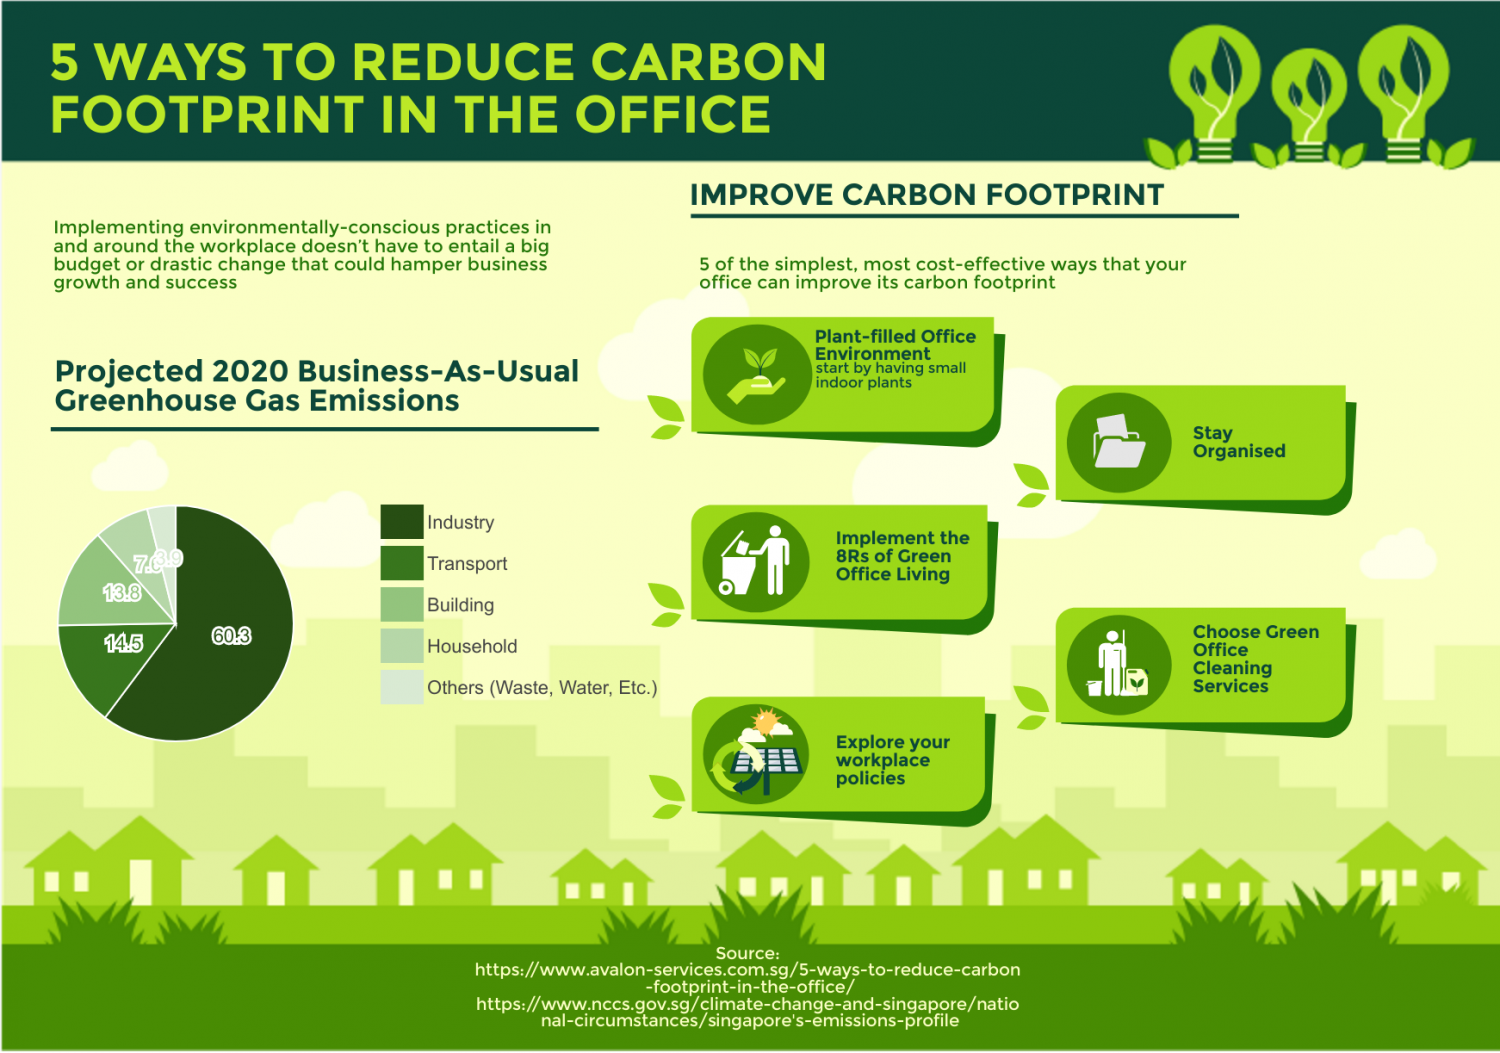 Take A Look At These 5 Of The Simplest Most Cost Effective Ways That Your Office Can Improve Its Carbon Footprint Eco Friendly Office Greenhouse Gas Emissions